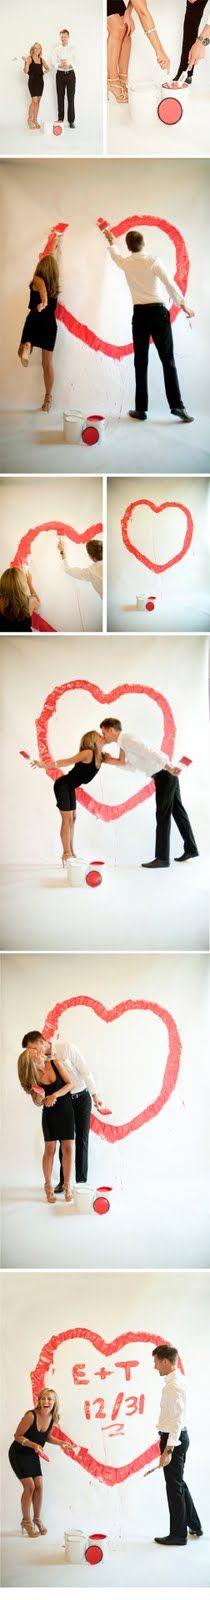 Engagement pictures w/paint! How freakin' cute!!